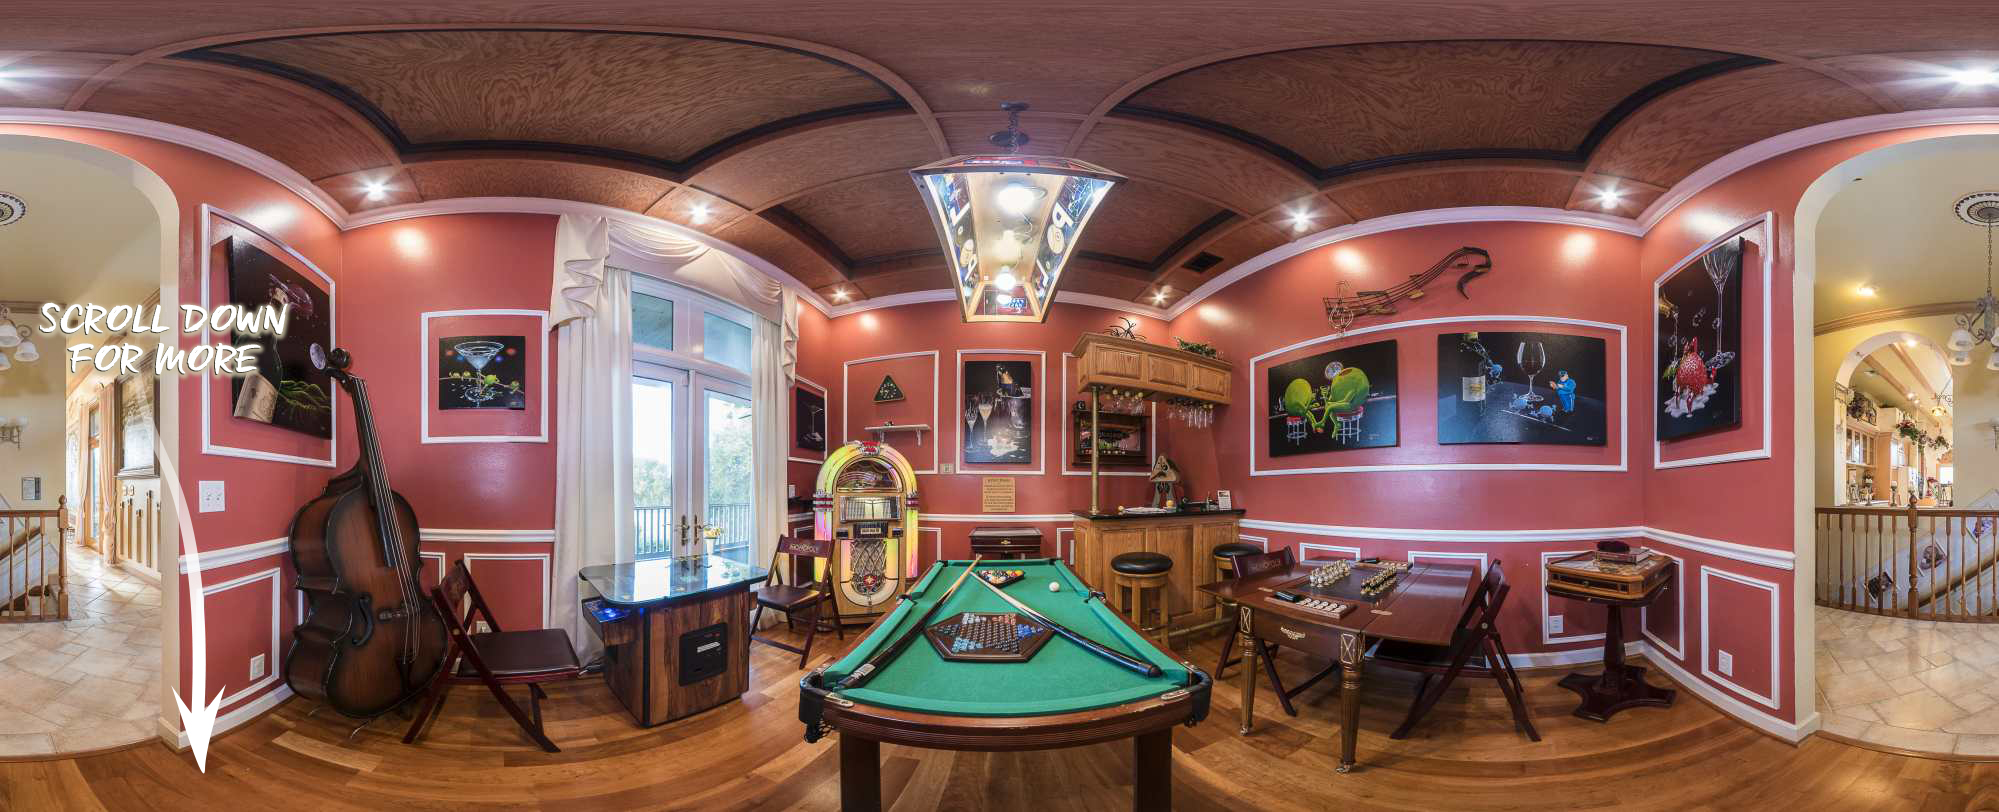 One of 4 game rooms at The Ever After Estate 62 acre vacation rental home